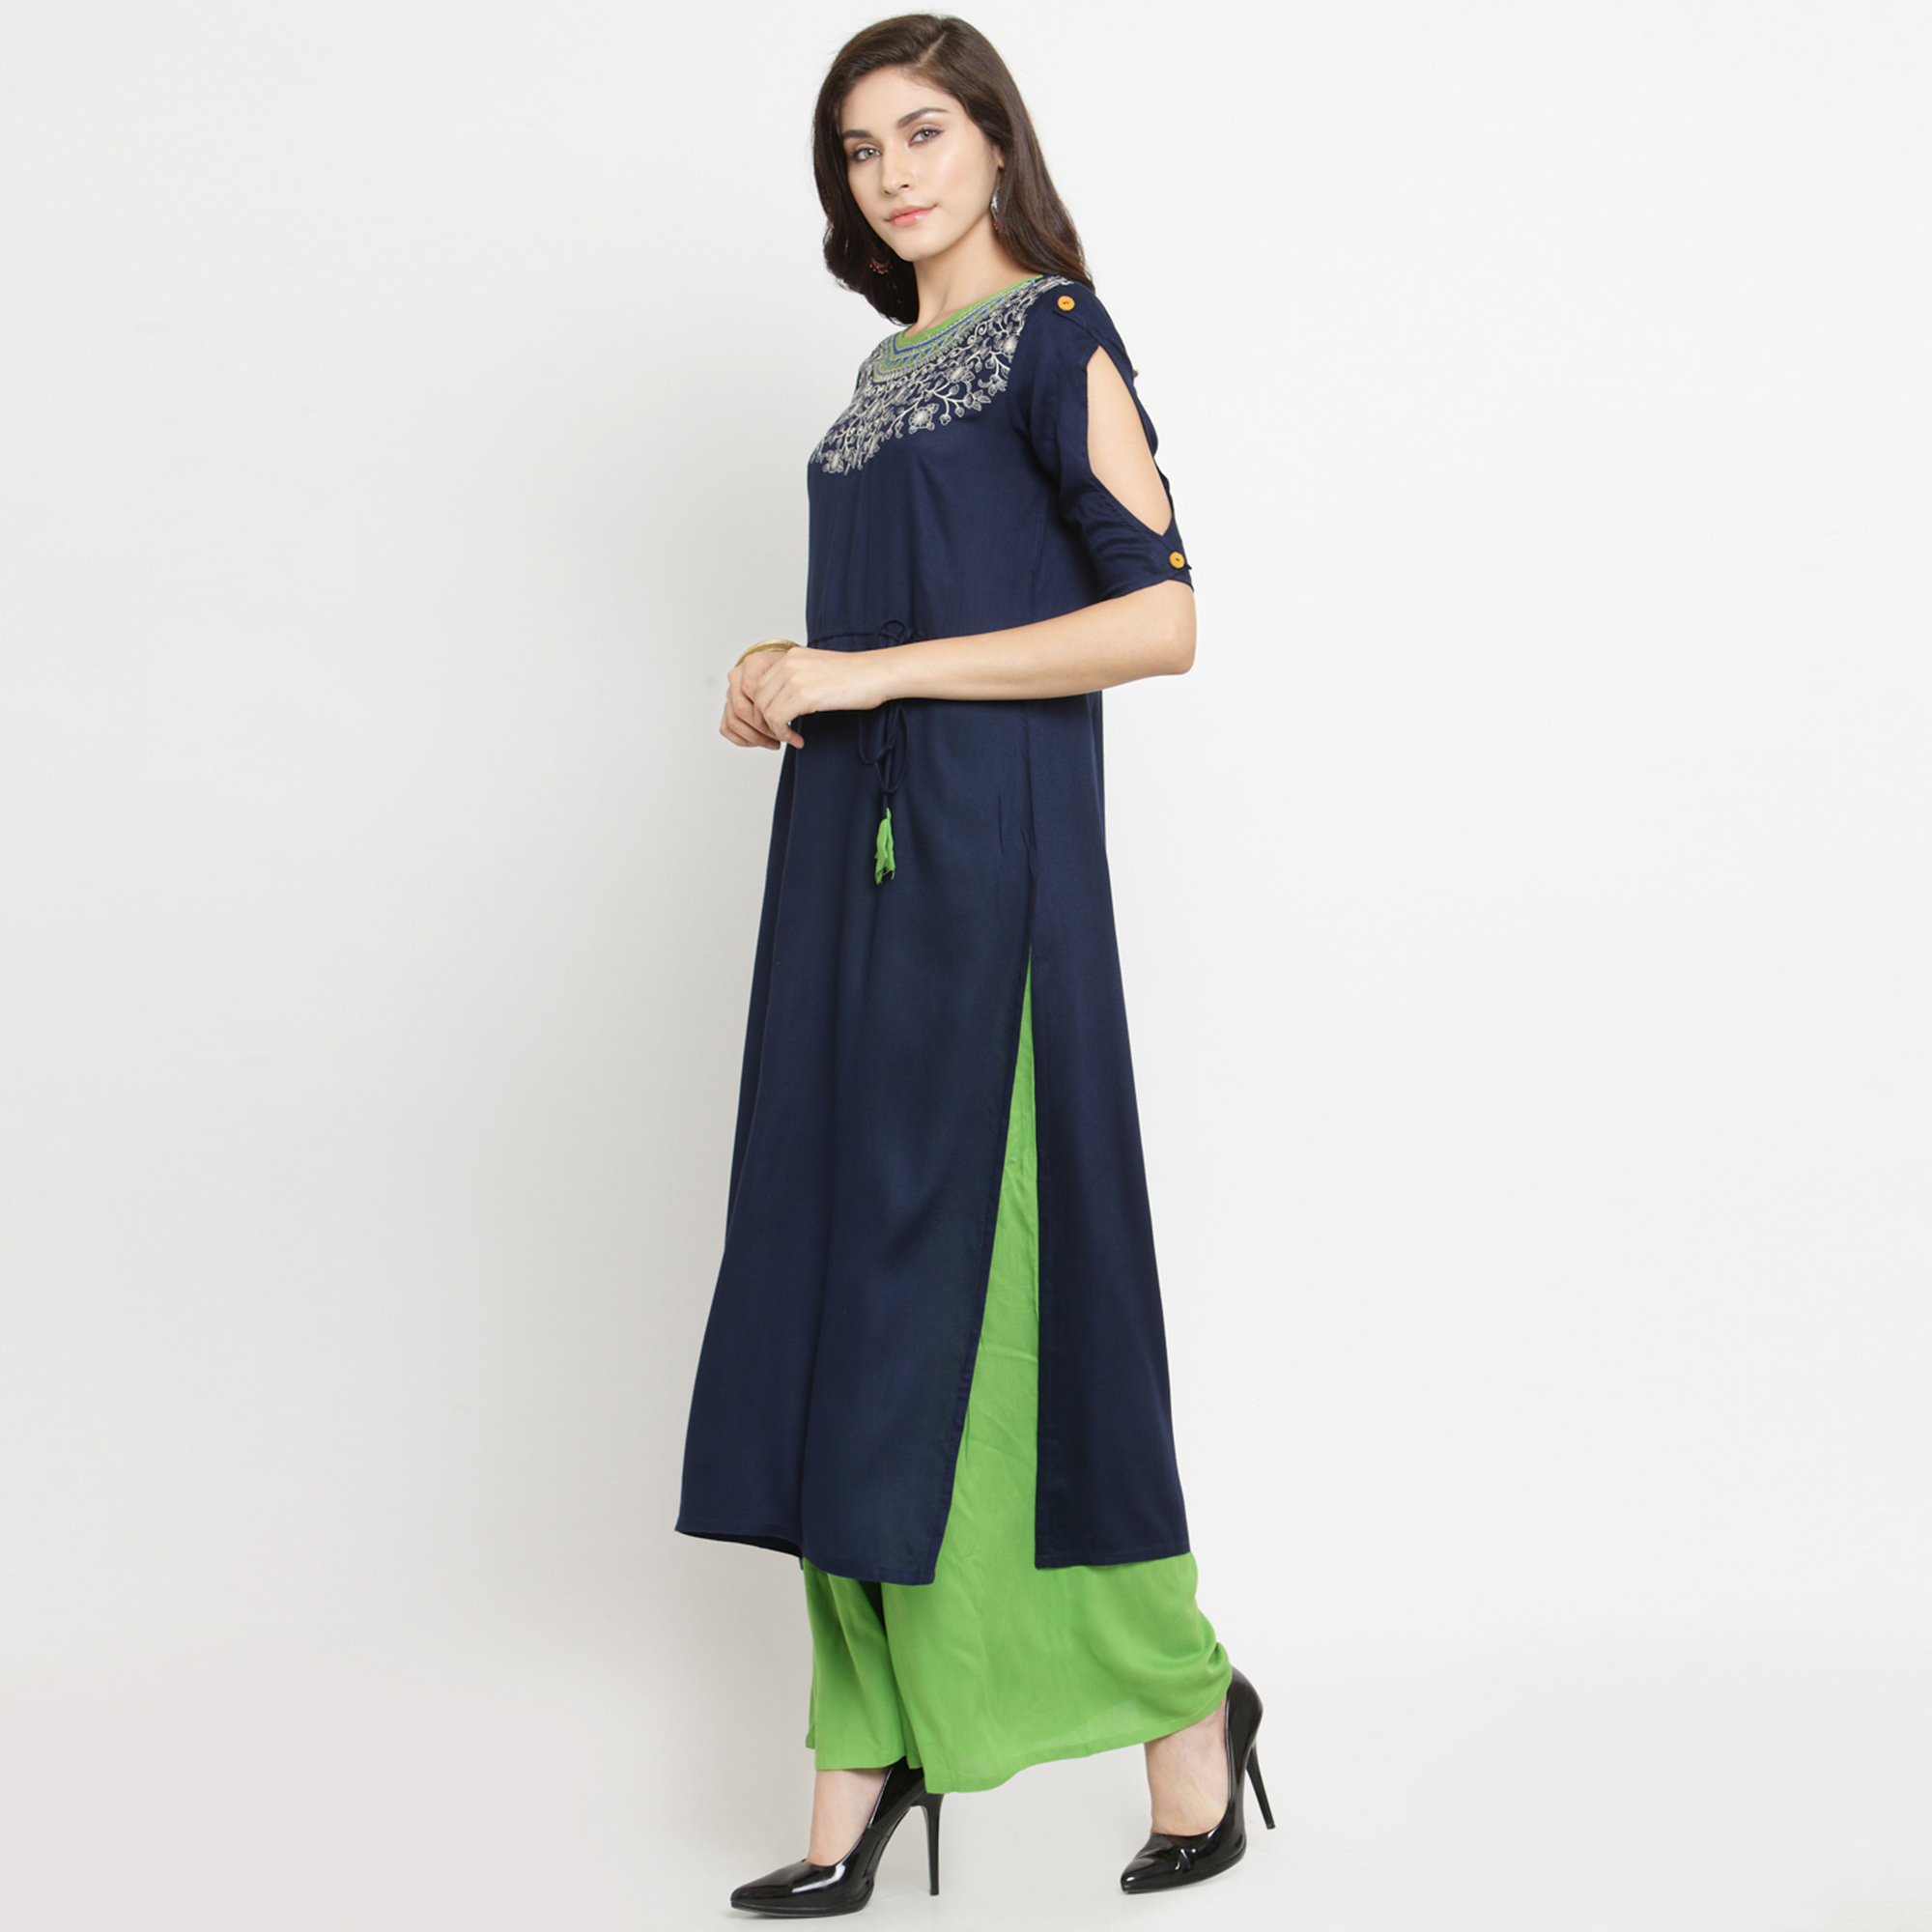 Delightful Navy Blue Colored Partywear Embroidered Rayon Dress Material